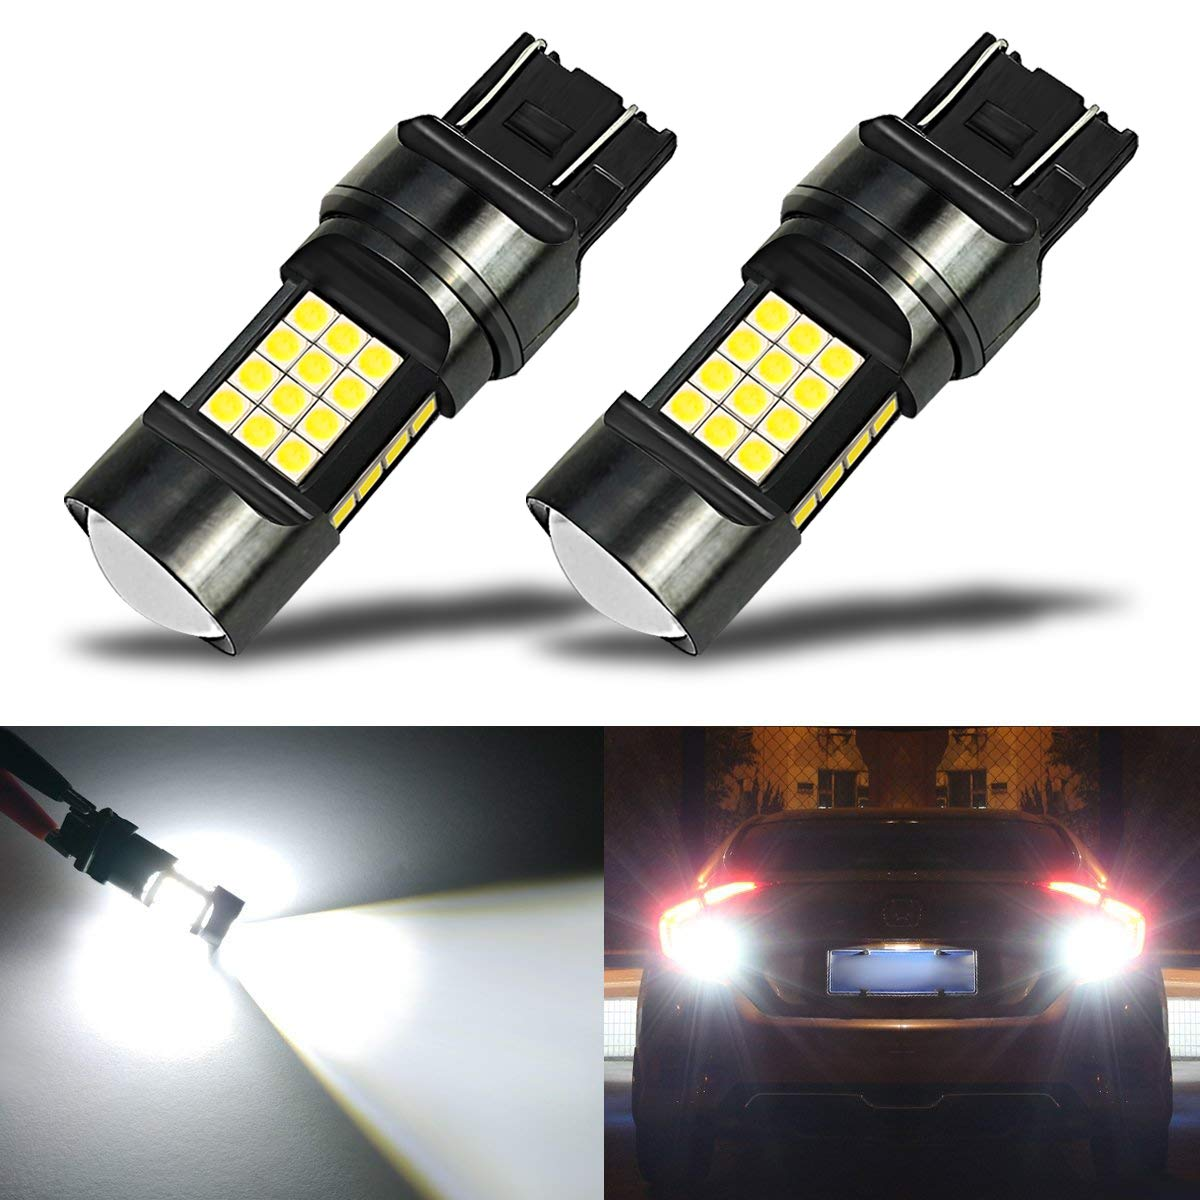 iBrightstar Newest Extremely Bright 36-SMD 3030 Chipsets 7440 7441 7443 992 LED Bulbs with Projector Lens replacement for Back Up Reverse Parking Daytime Running Lights Xenon White